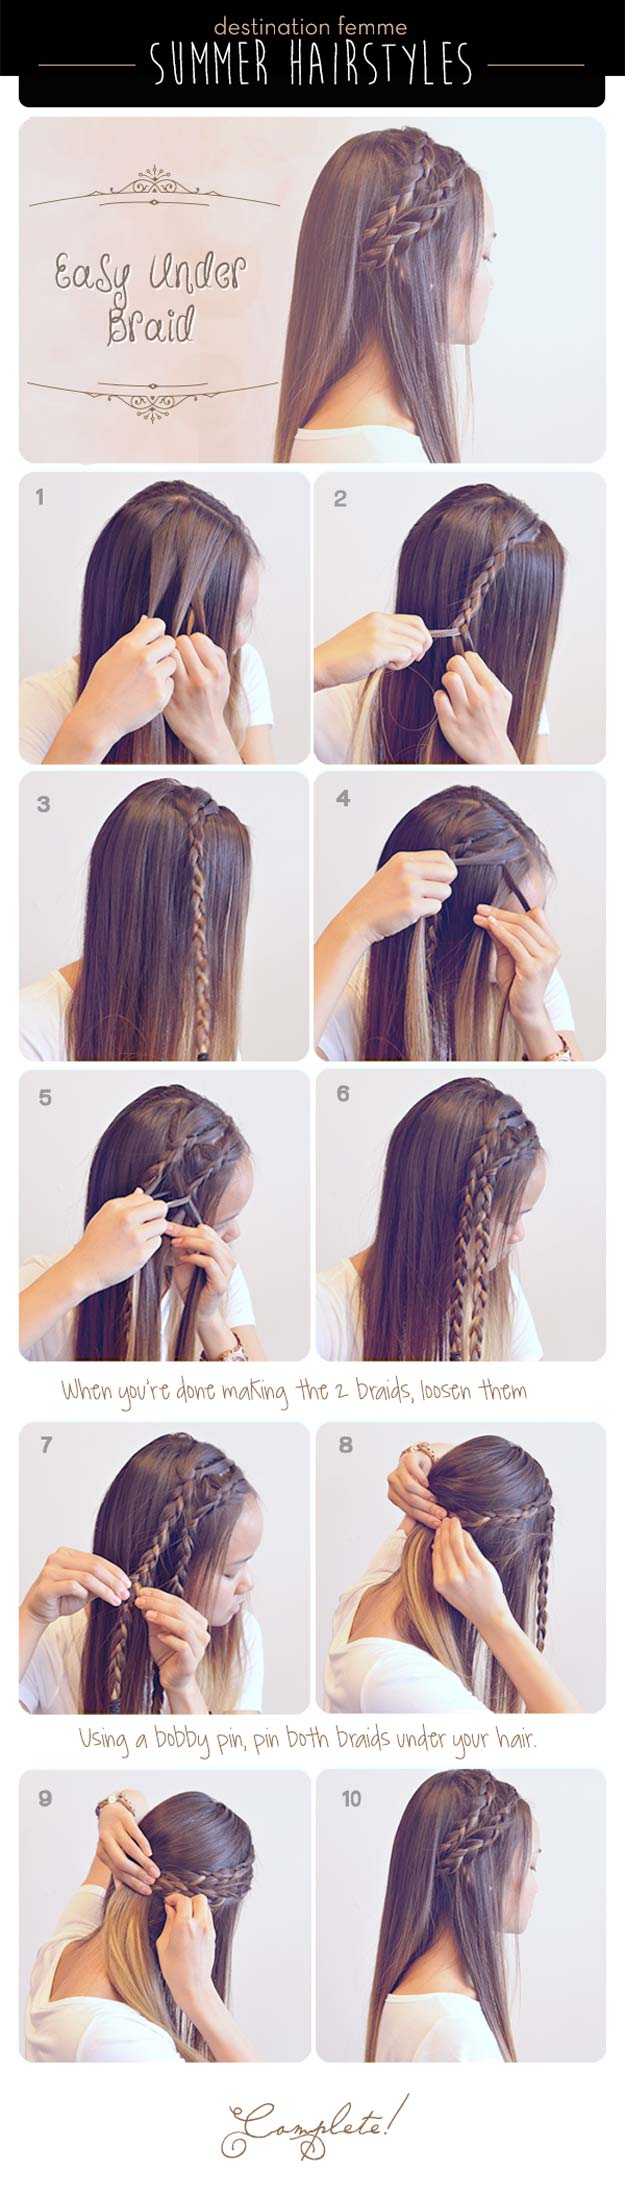 5 Super-Easy Braids You Can Do on LongHair advise